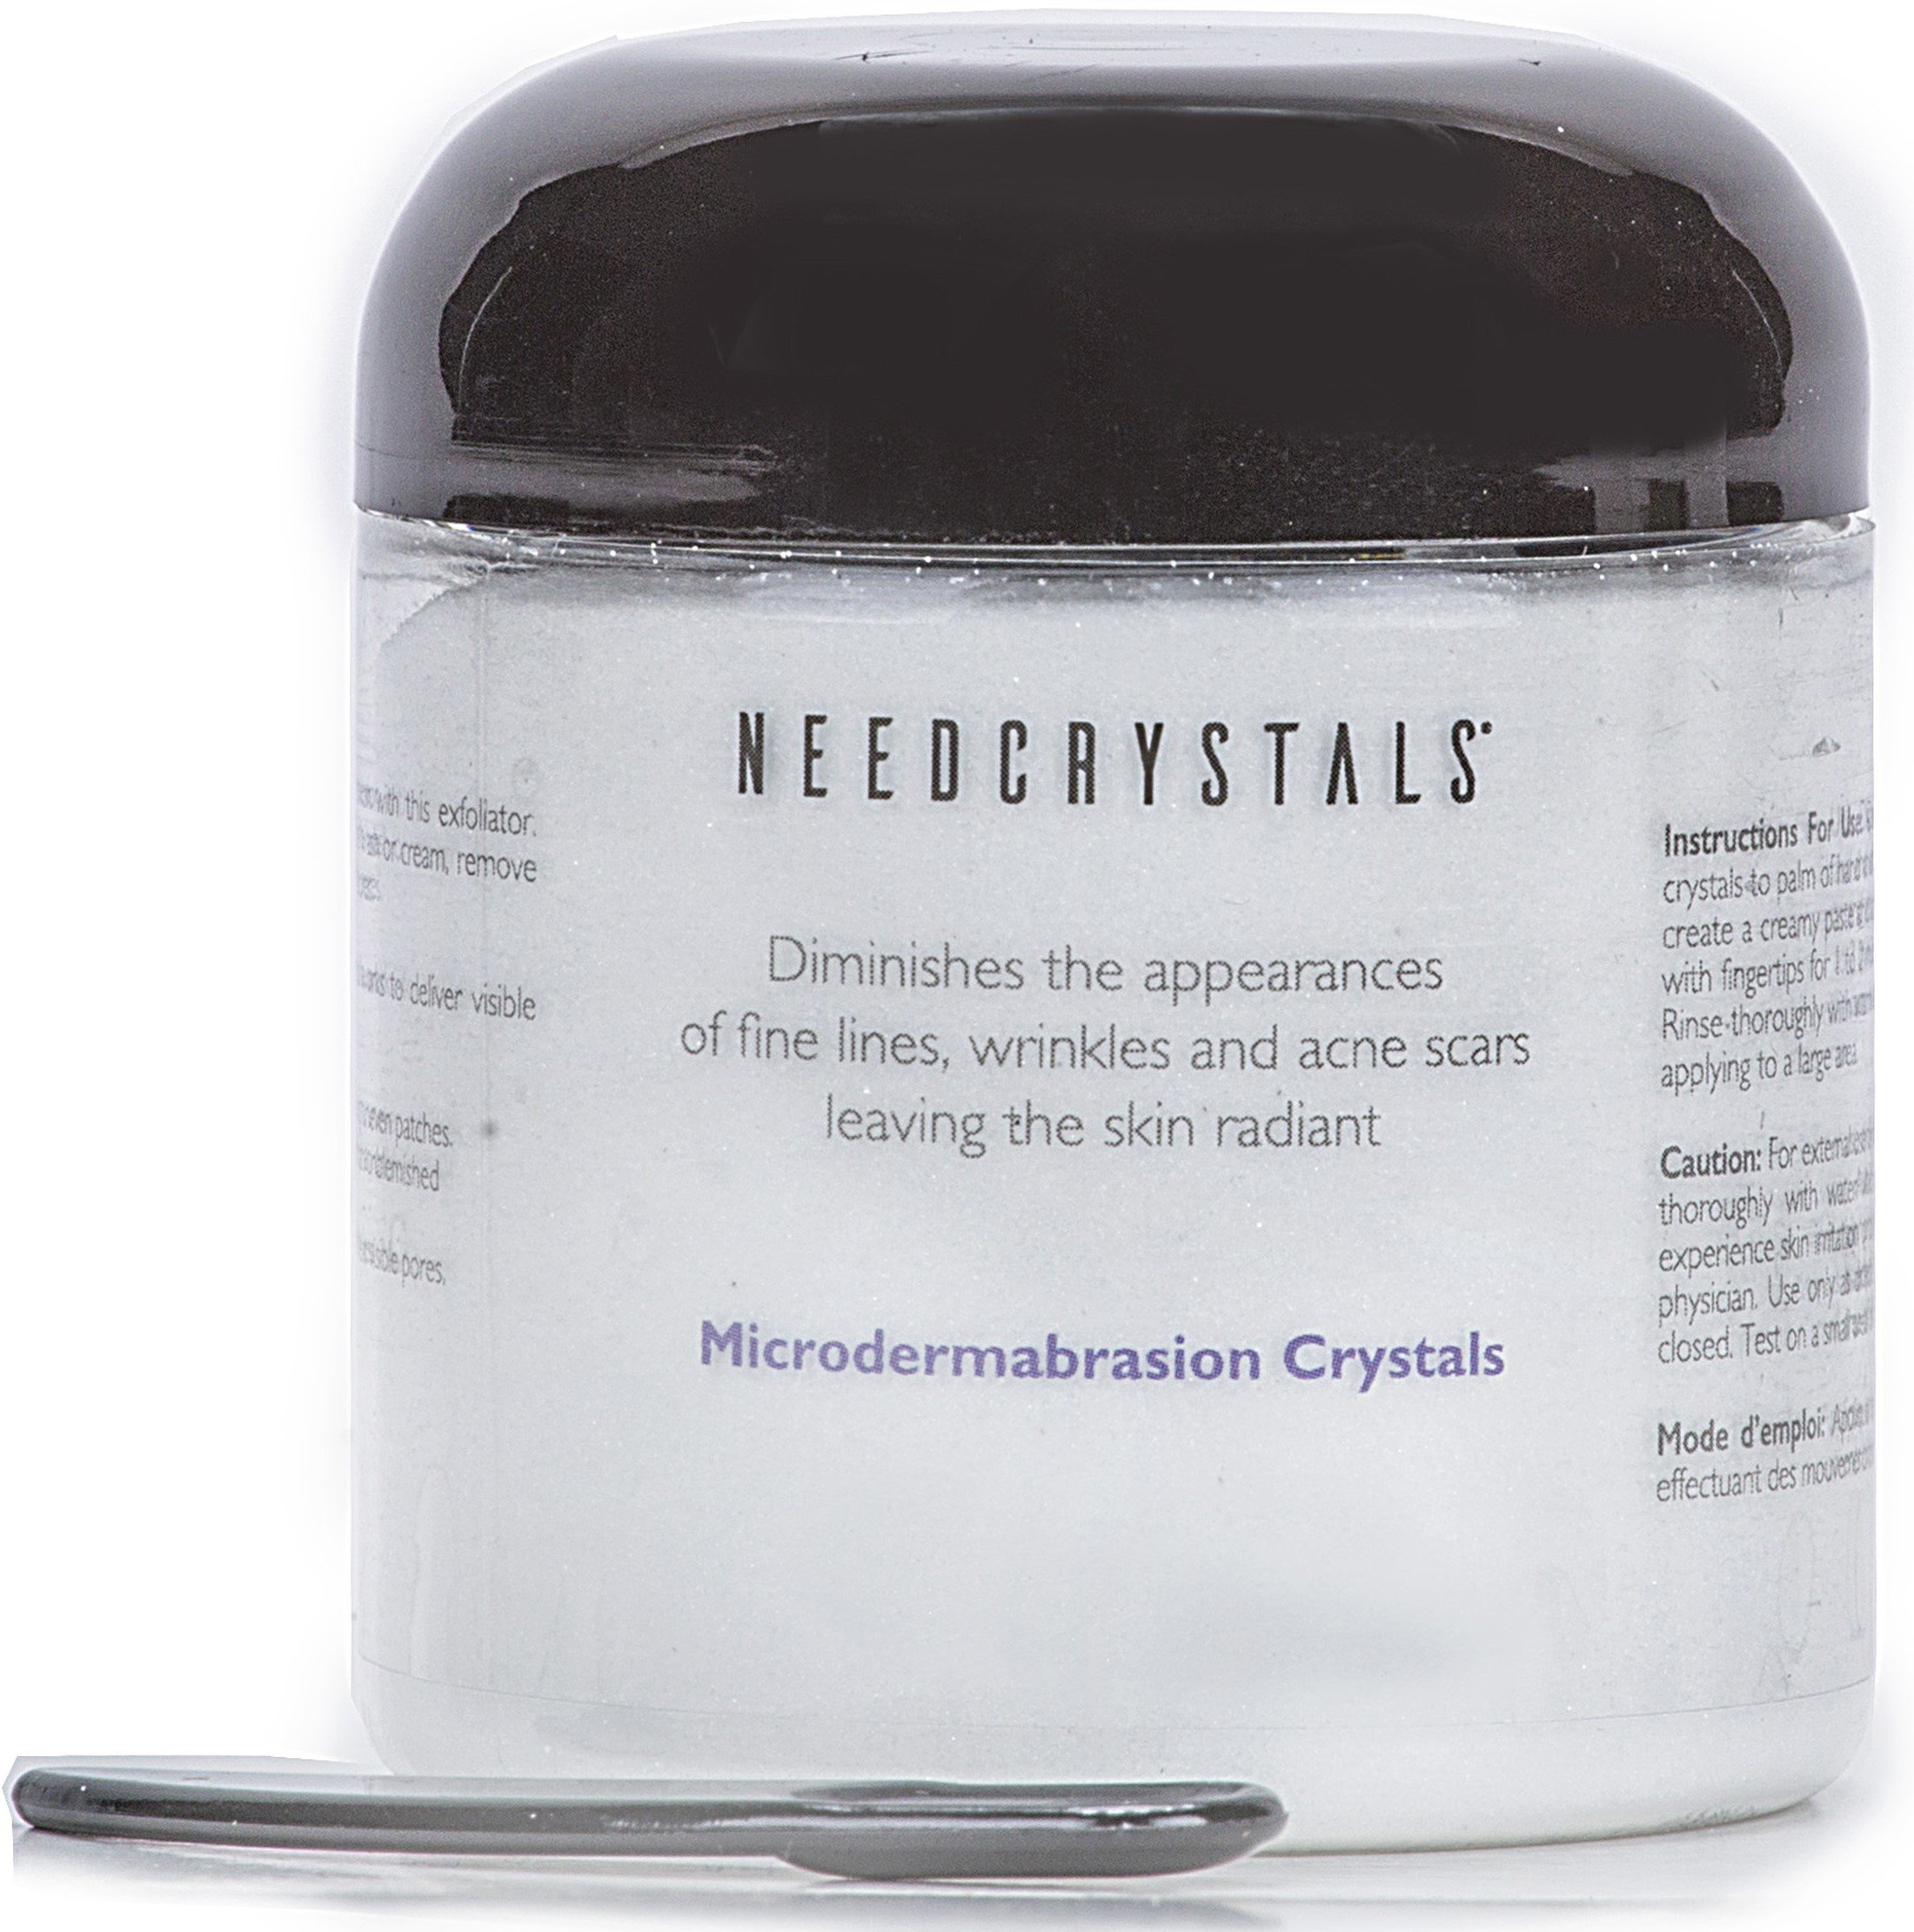 NeedCrystals Microdermabrasion Crystals (8 oz, 120 grit)